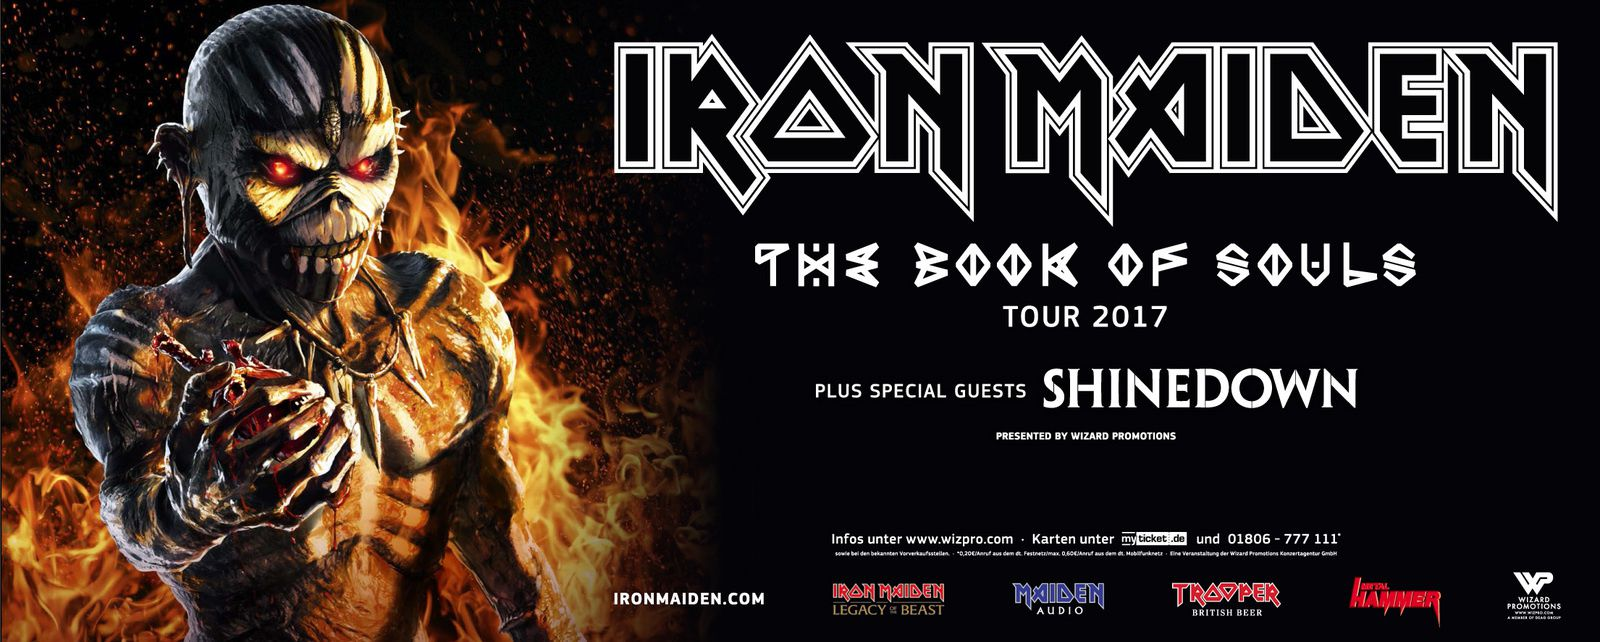 """IRON MAIDEN continues """"Book of Souls tour"""" also in 2017"""